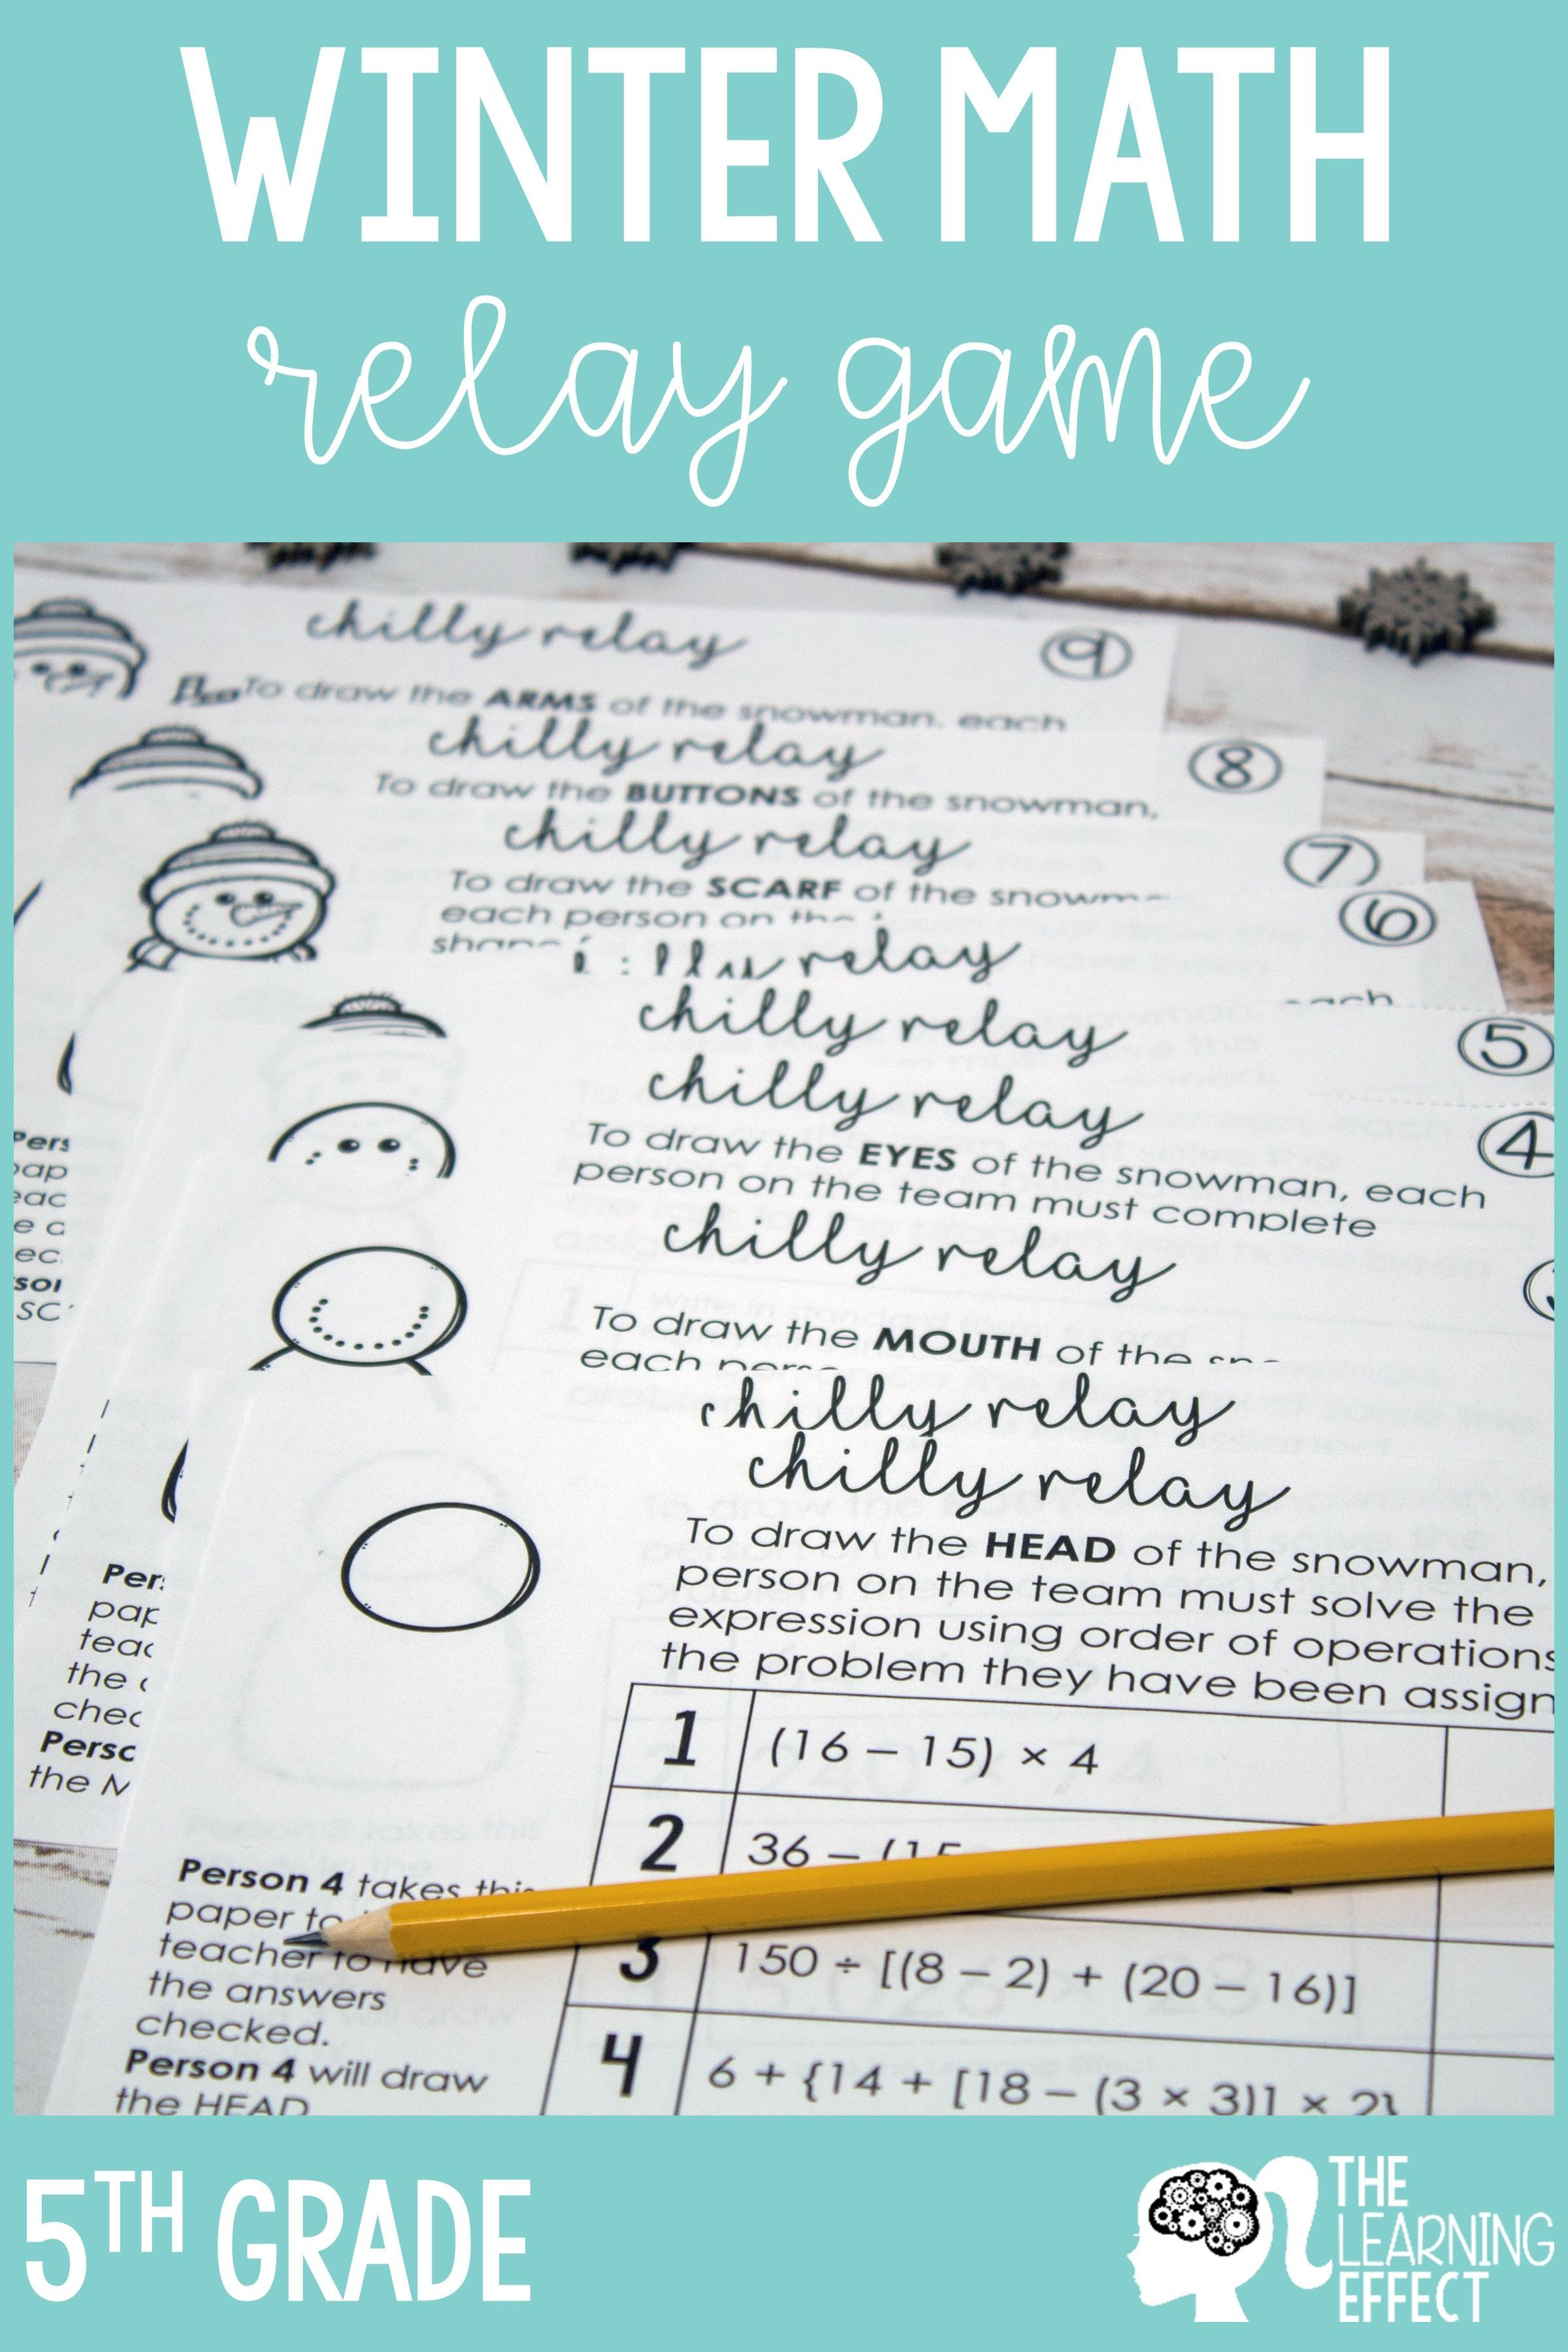 Winter Math Game For 5th Grade